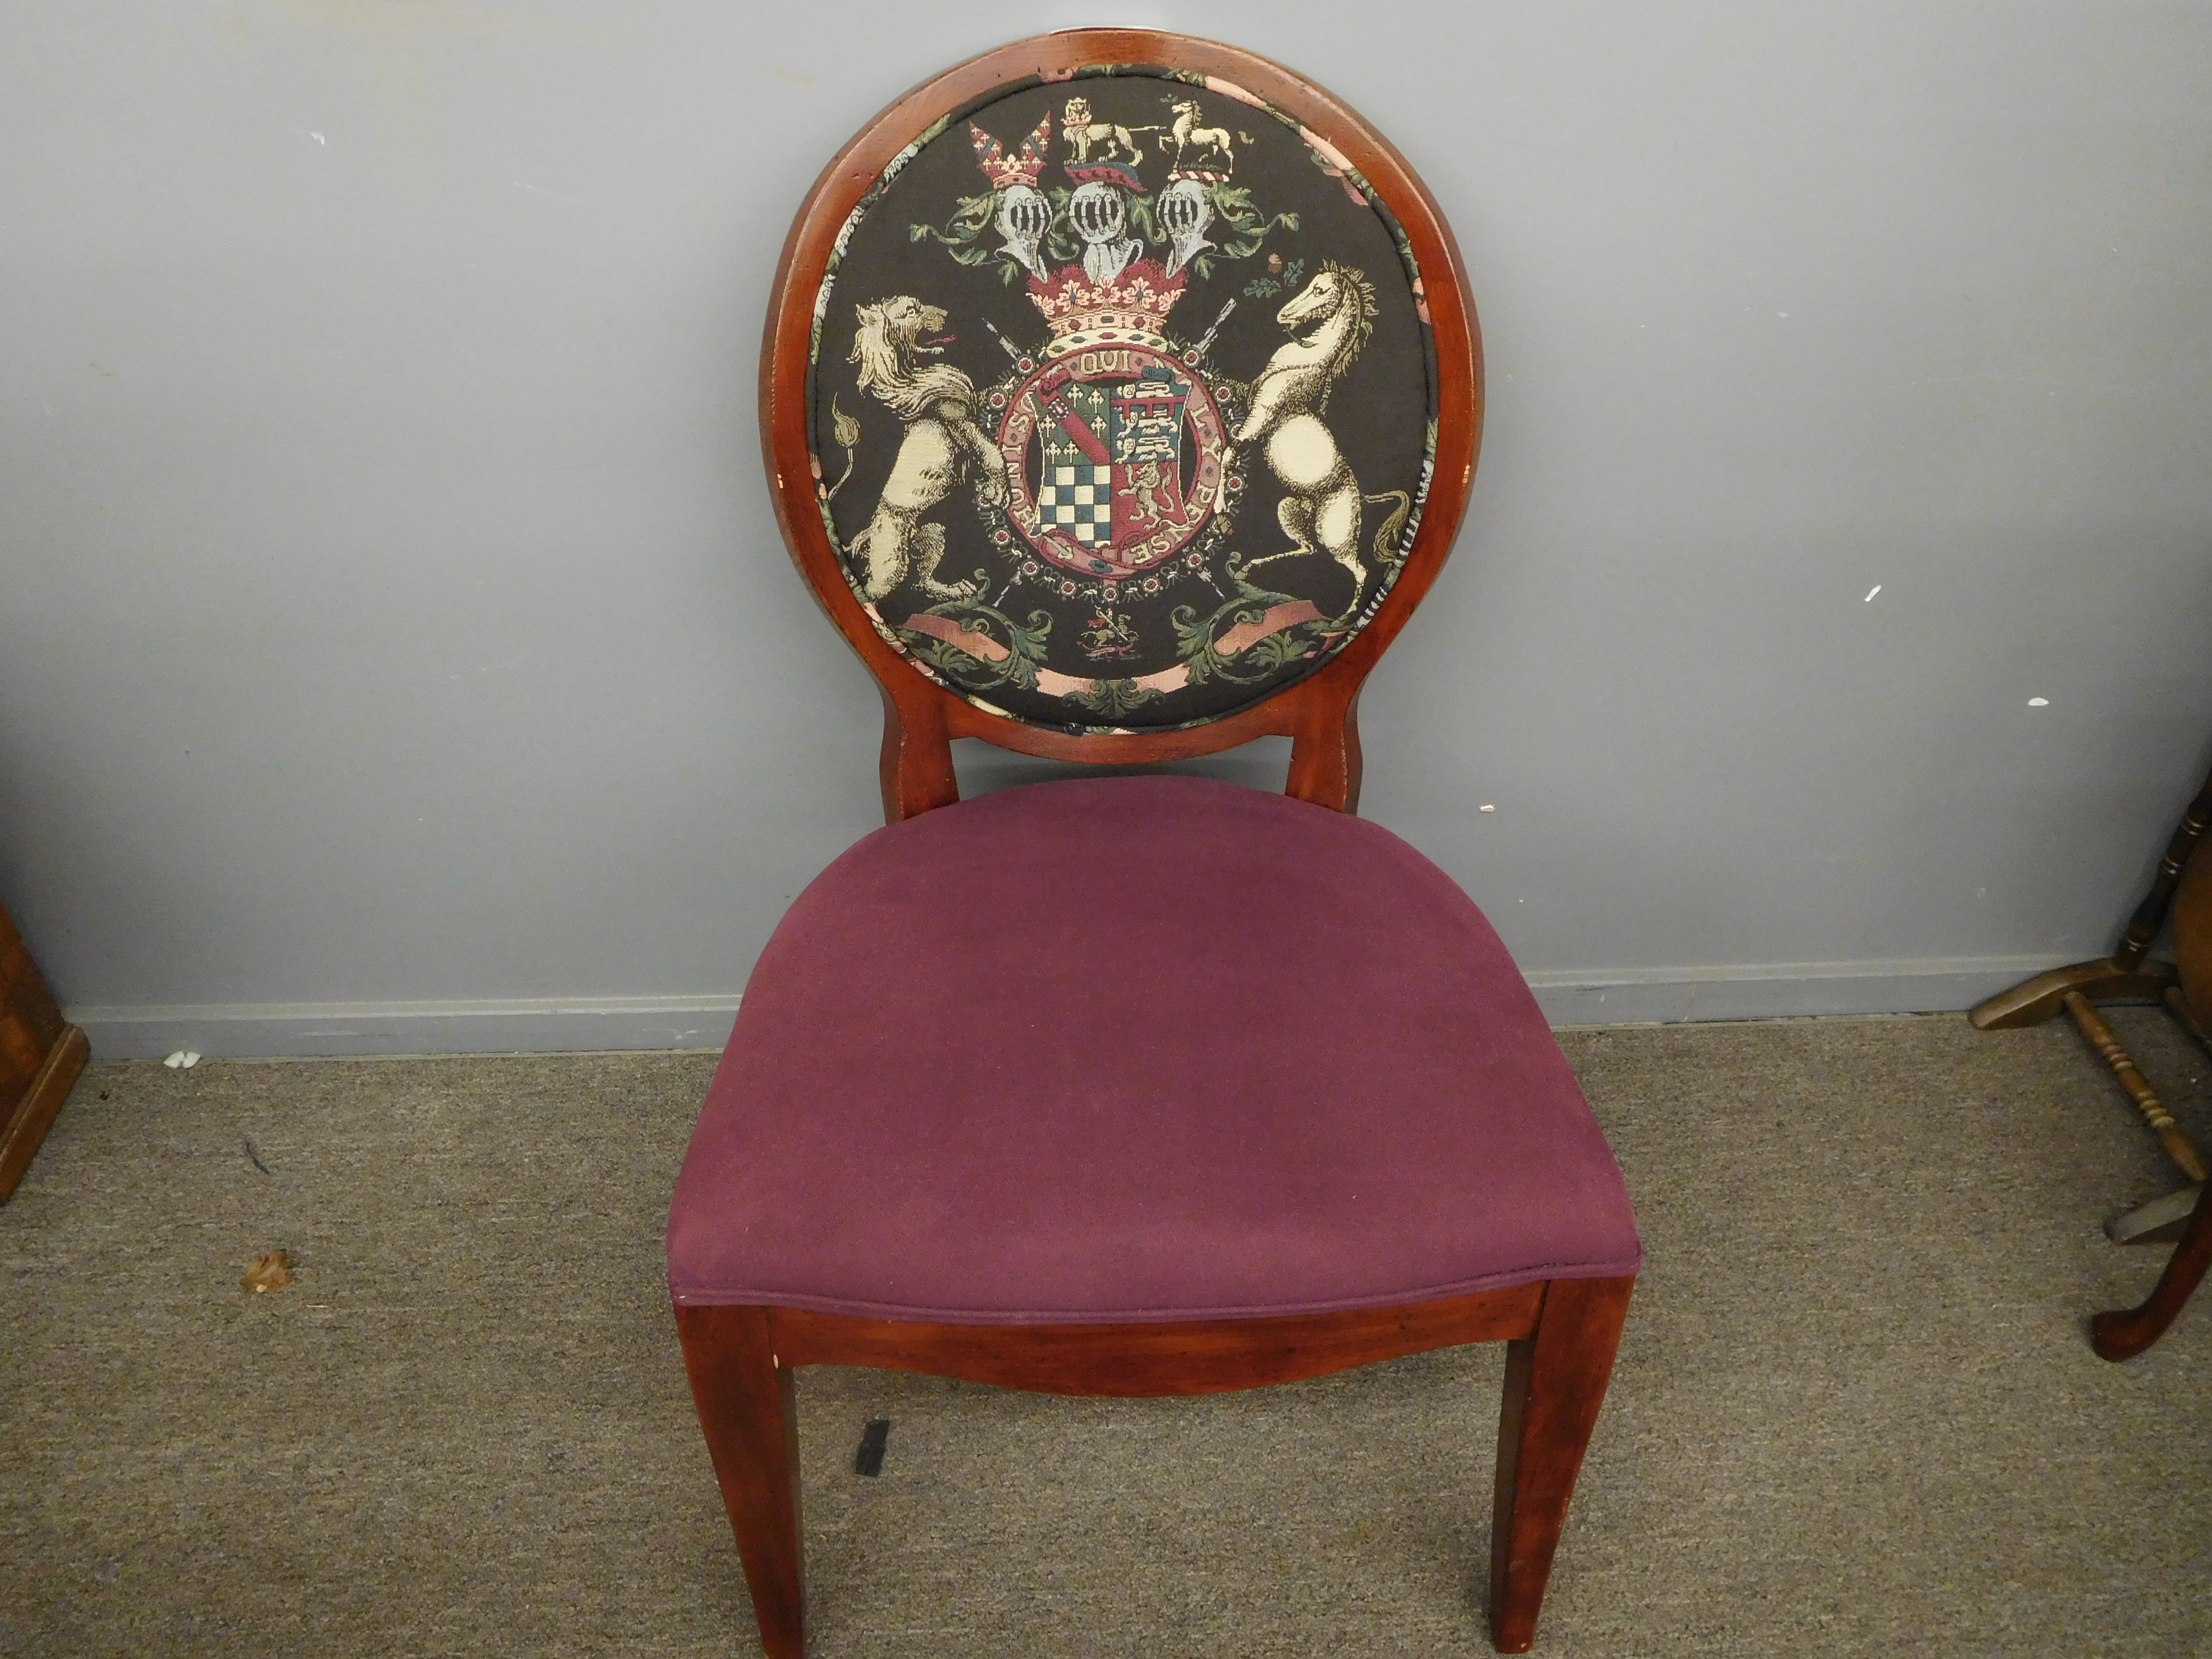 Henredon Coat of Arms Accent Chair with Wine Upholstered Seat